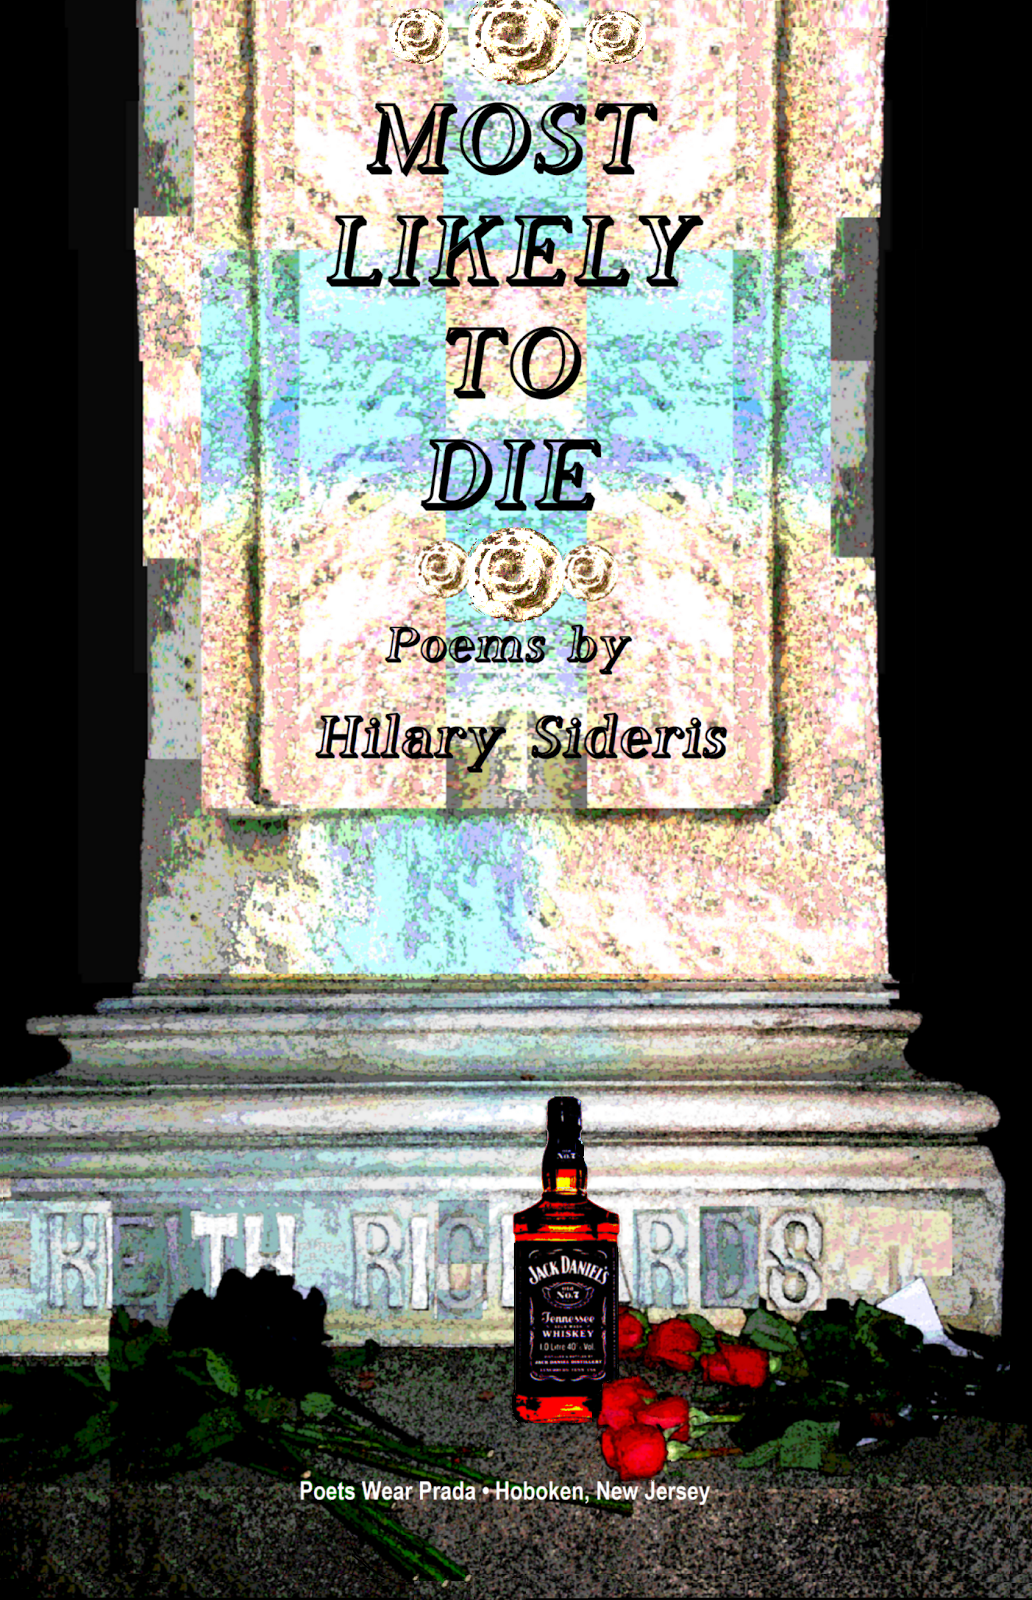 MOST LIKELY TO DIE by Hilary Sideris